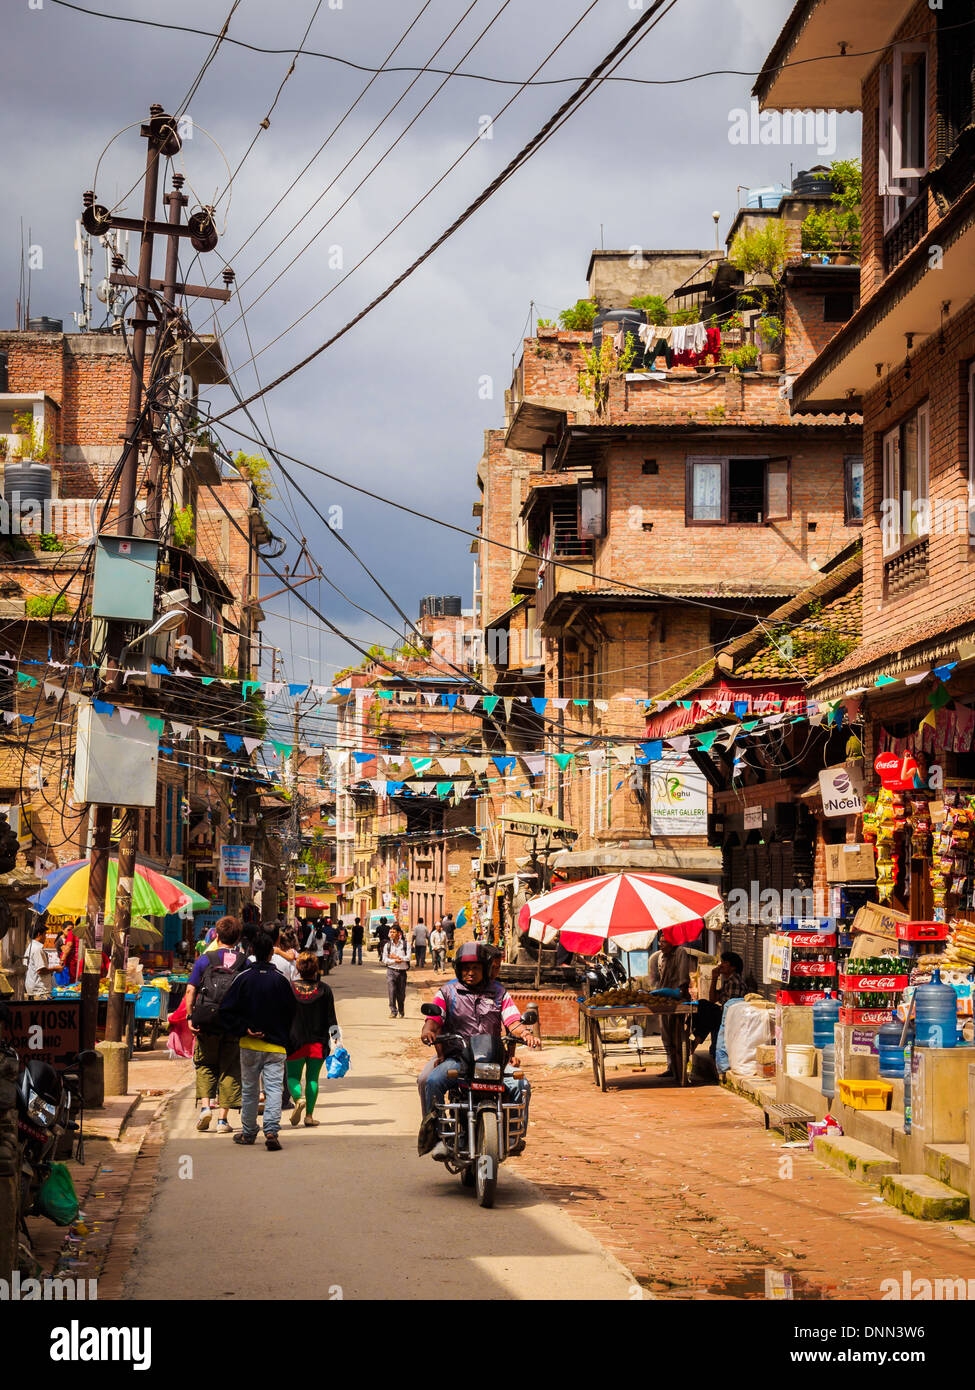 Colorful Patan streets - Stock Image